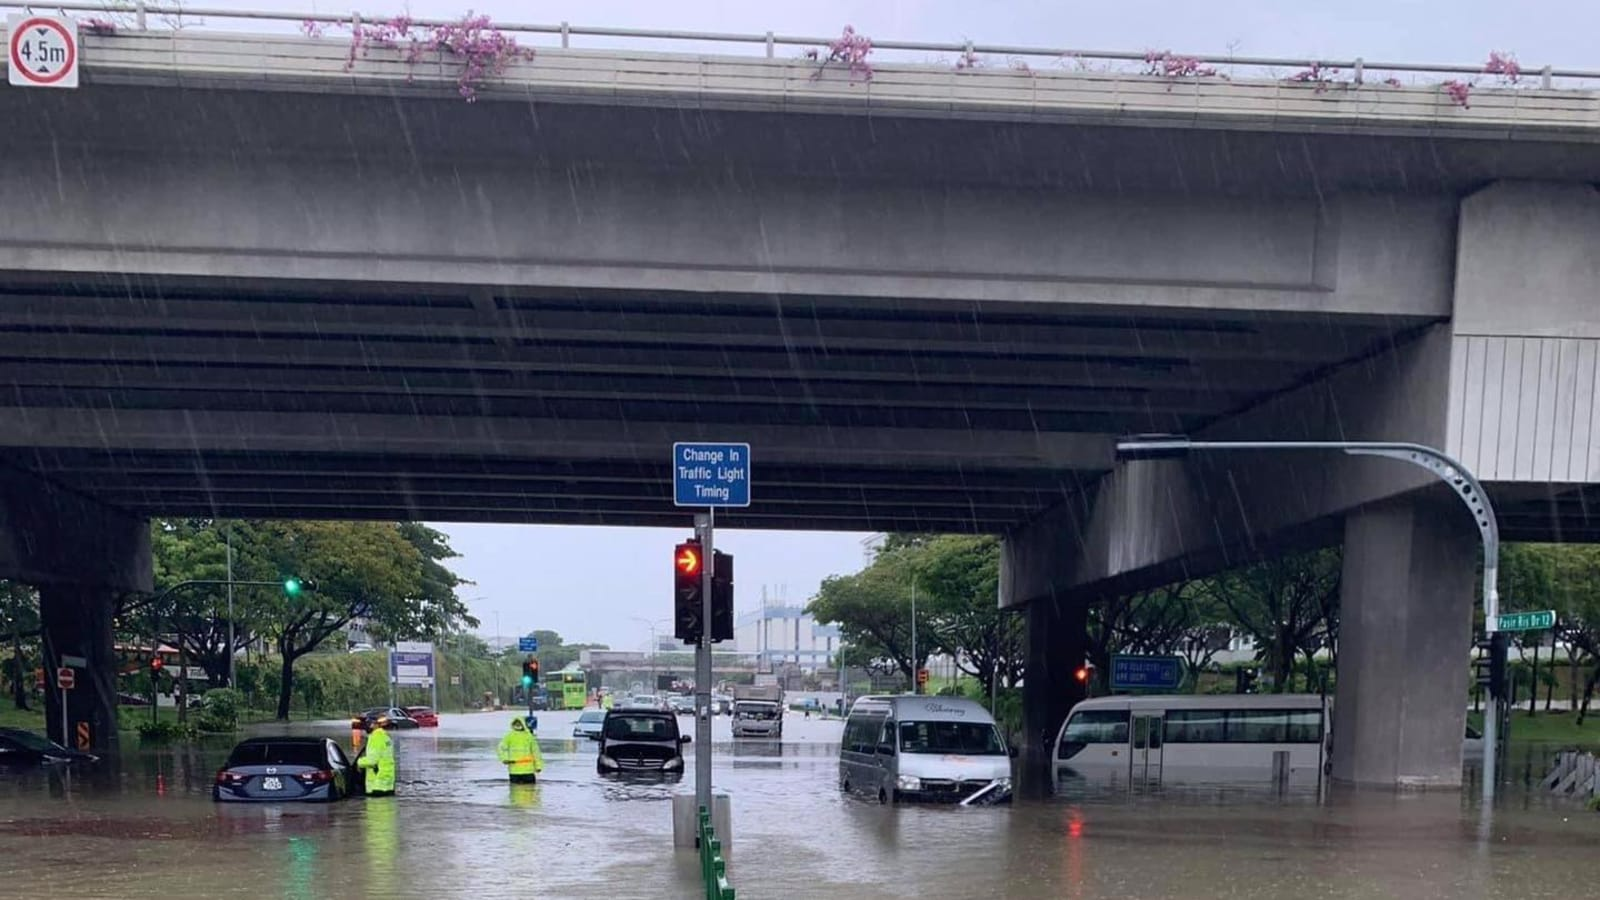 Unauthorised drainage works caused flooding at Pasir Ris-Tampines junction, PUB to take action against company thumbnail